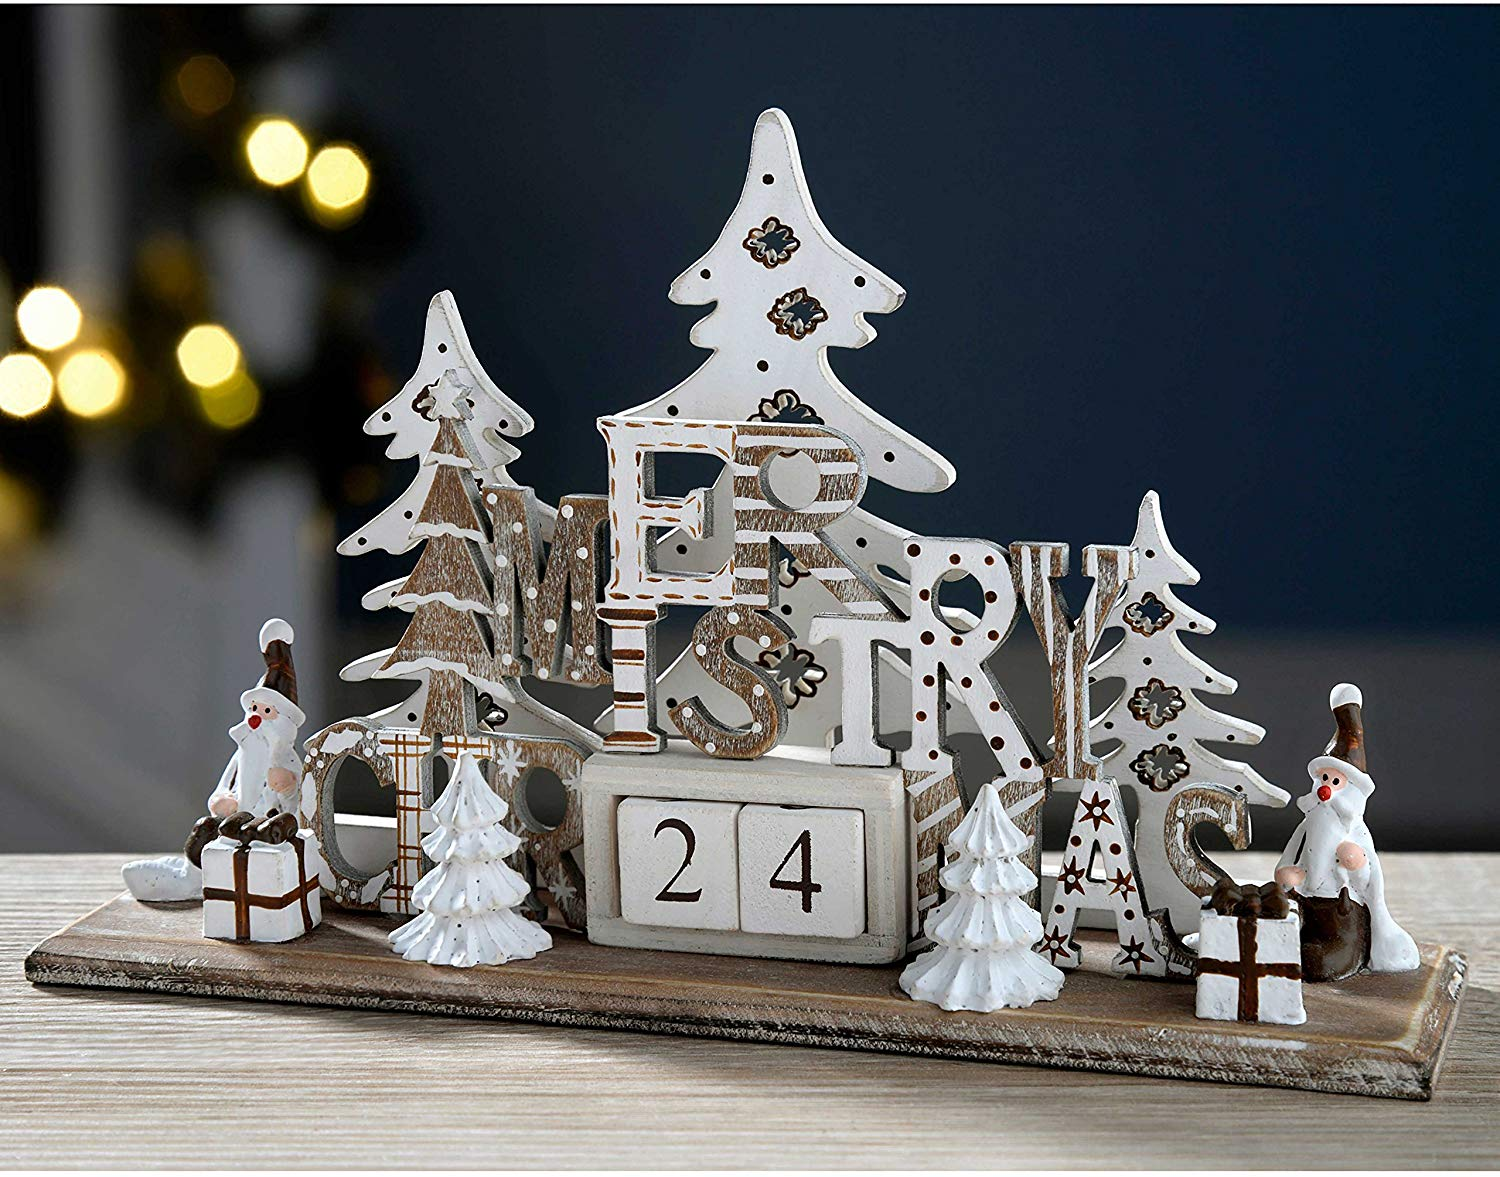 61% off Wooden Christmas Scene Advent Calendar Decoration, Wood, 21 cm